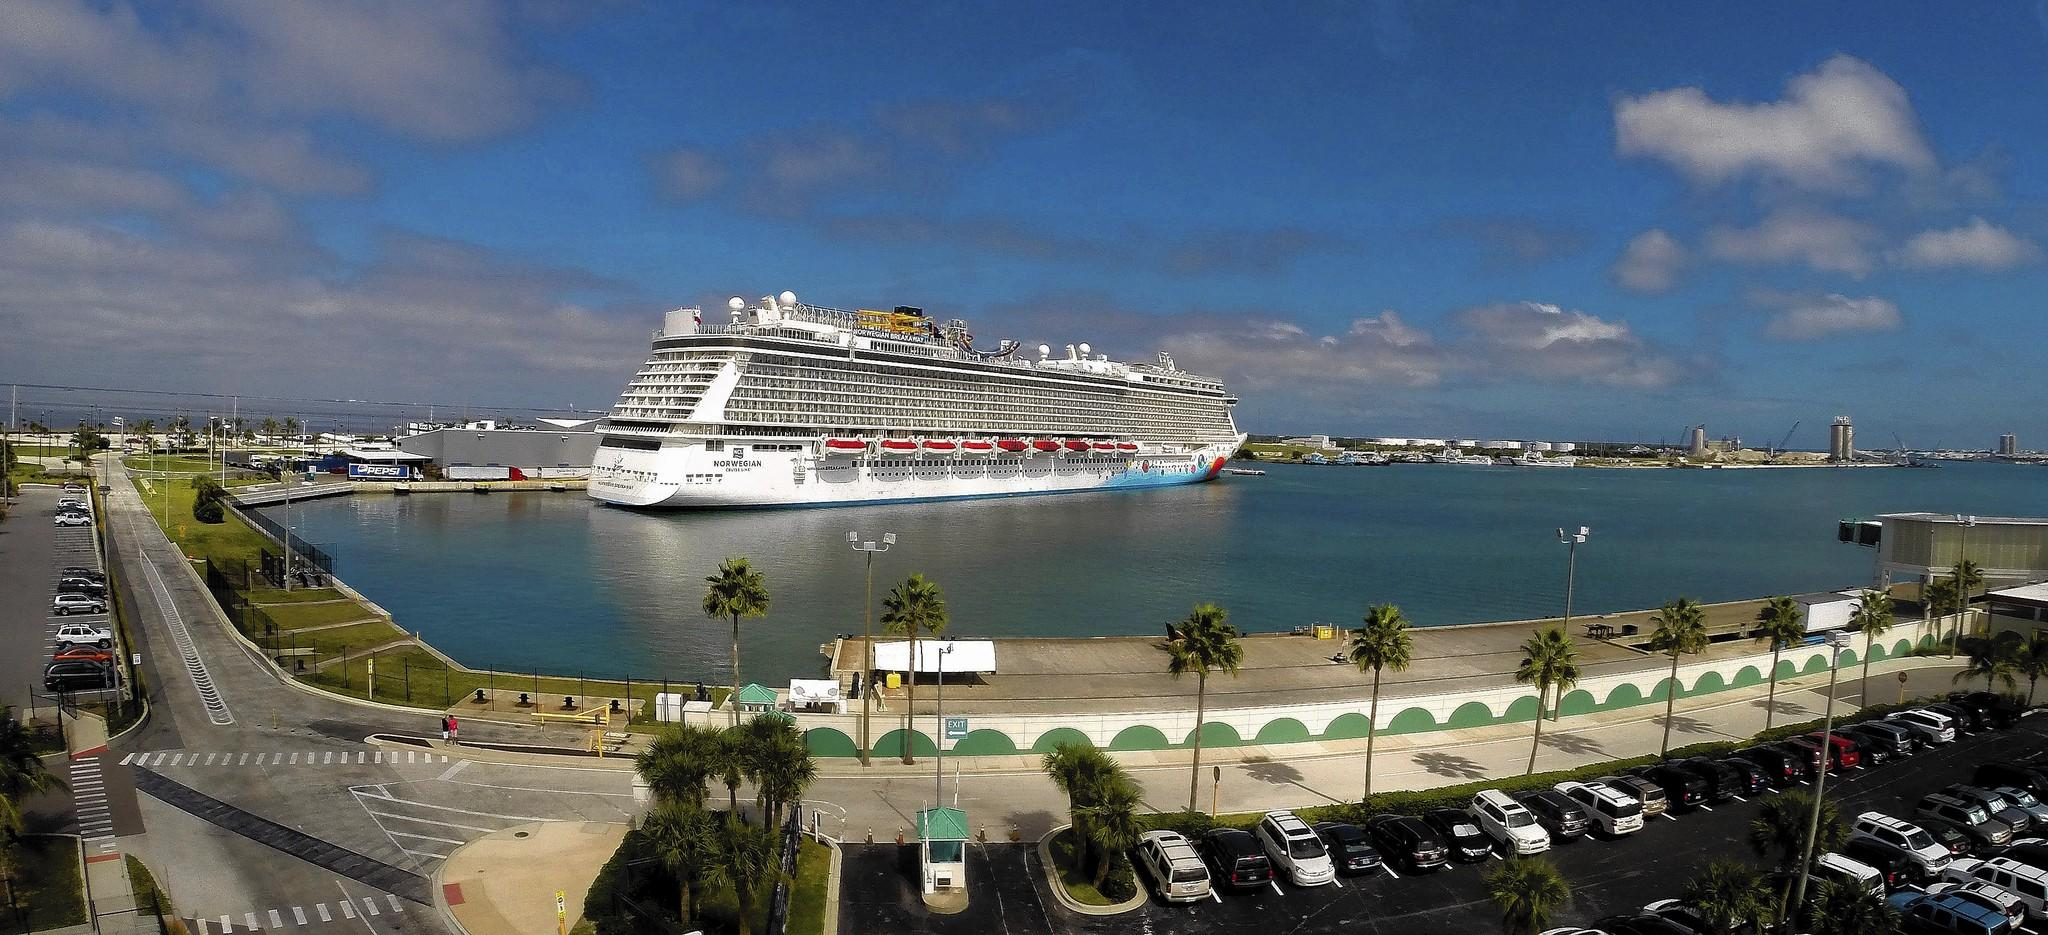 The new Norwegian Cruise Lines ship Breakaway, making its first docking at Port Canaveral, Tuesday, October 15, 2013.